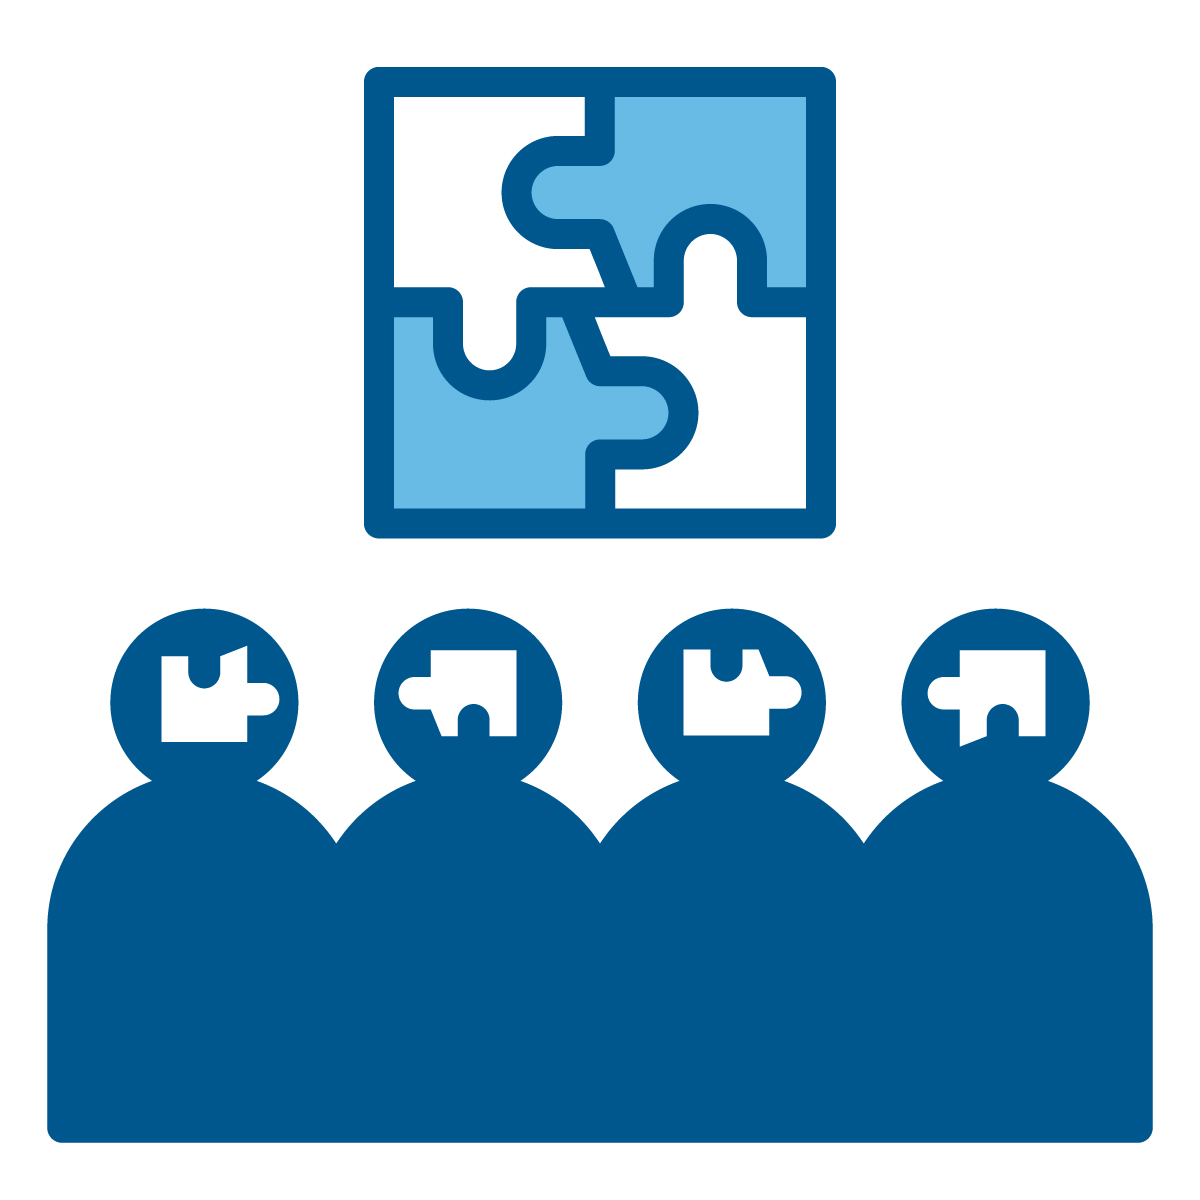 A puzzle icon showing people working together to solive problems in stage 3